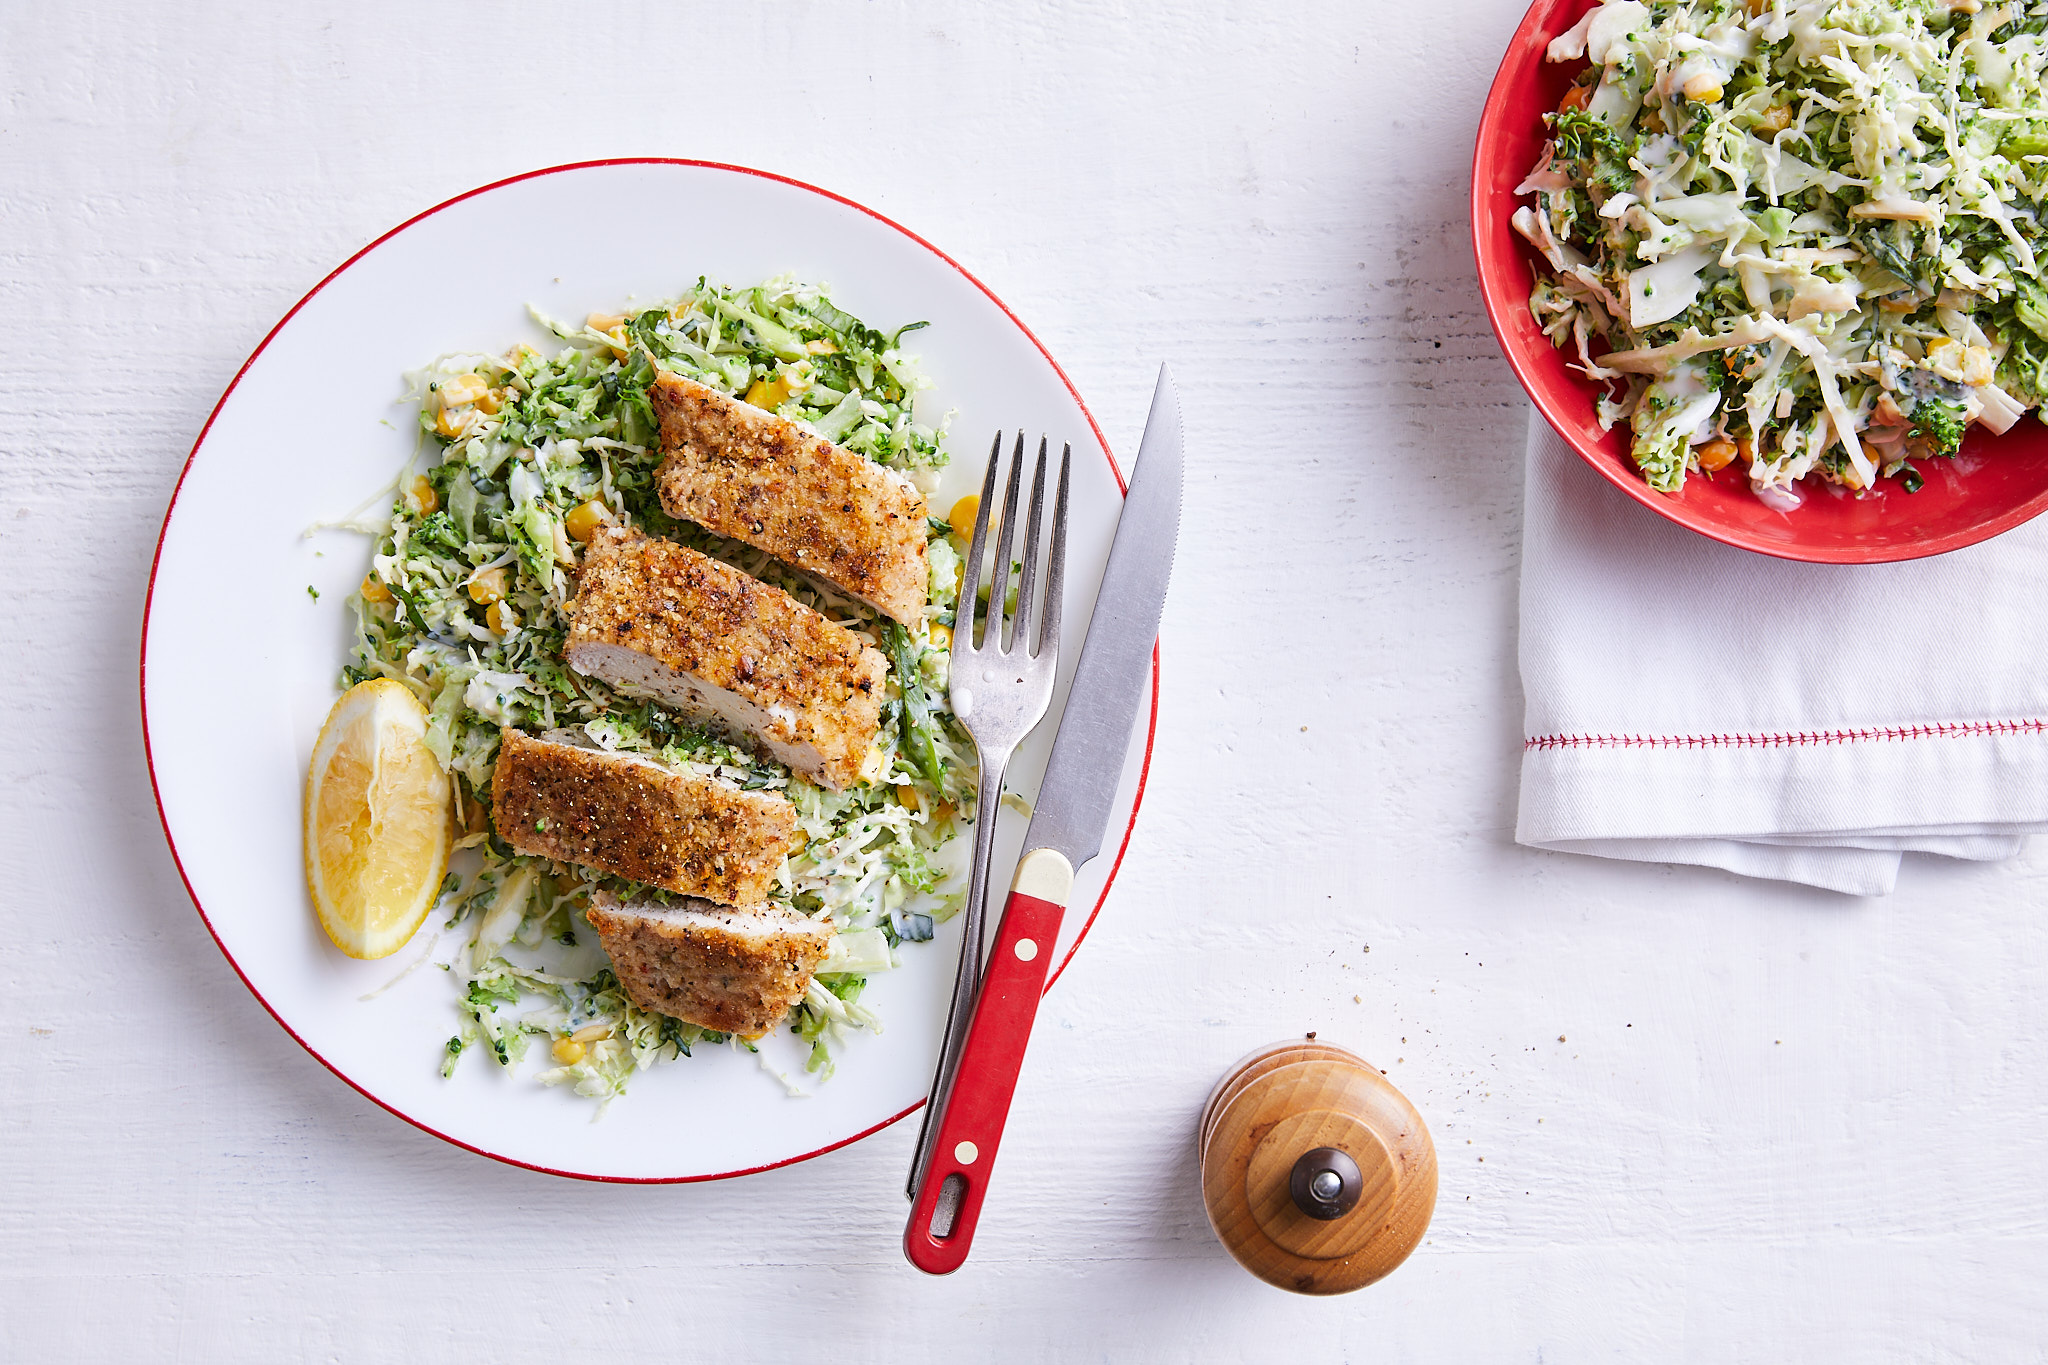 Chicken schnitzel with broccoli slaw